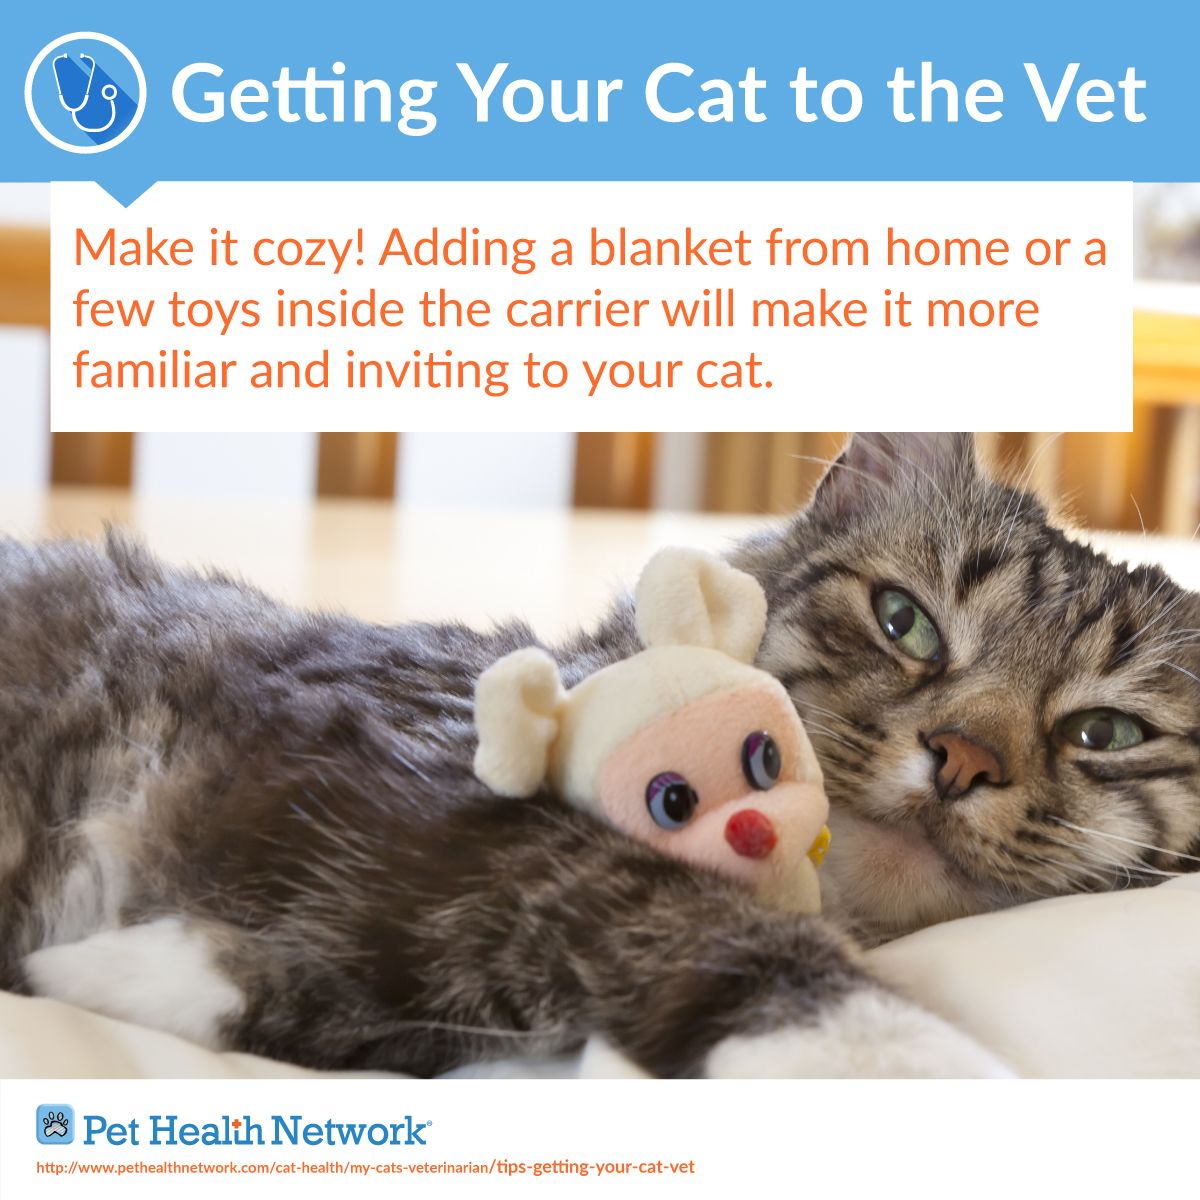 Tips for getting your cat to the veterinarian